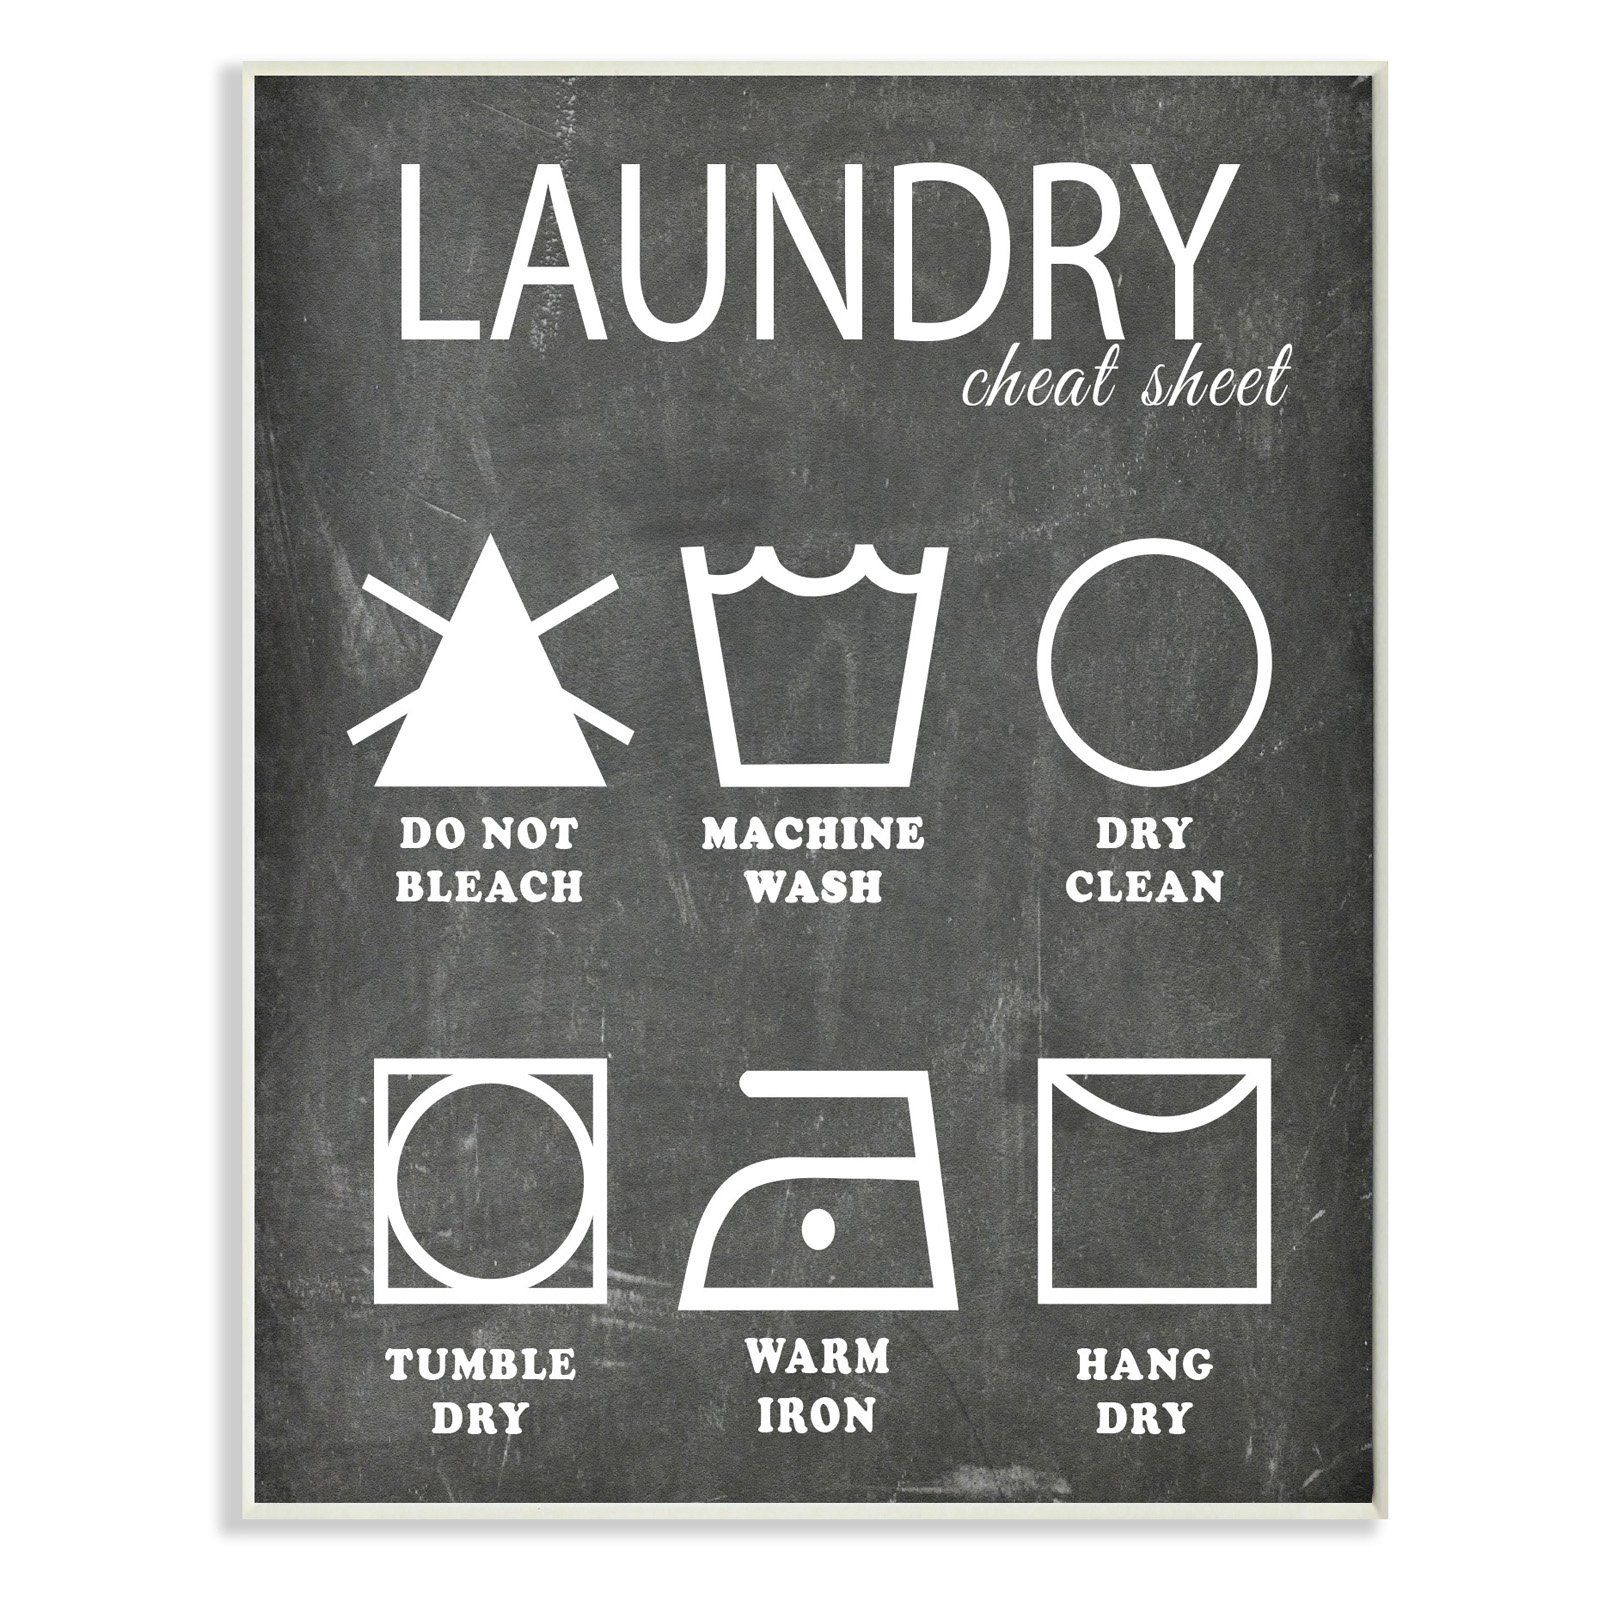 Laundry Wall Plaque Laundry Cheat Sheet Icons Chalk Look Wall Plaque Art  Wrp